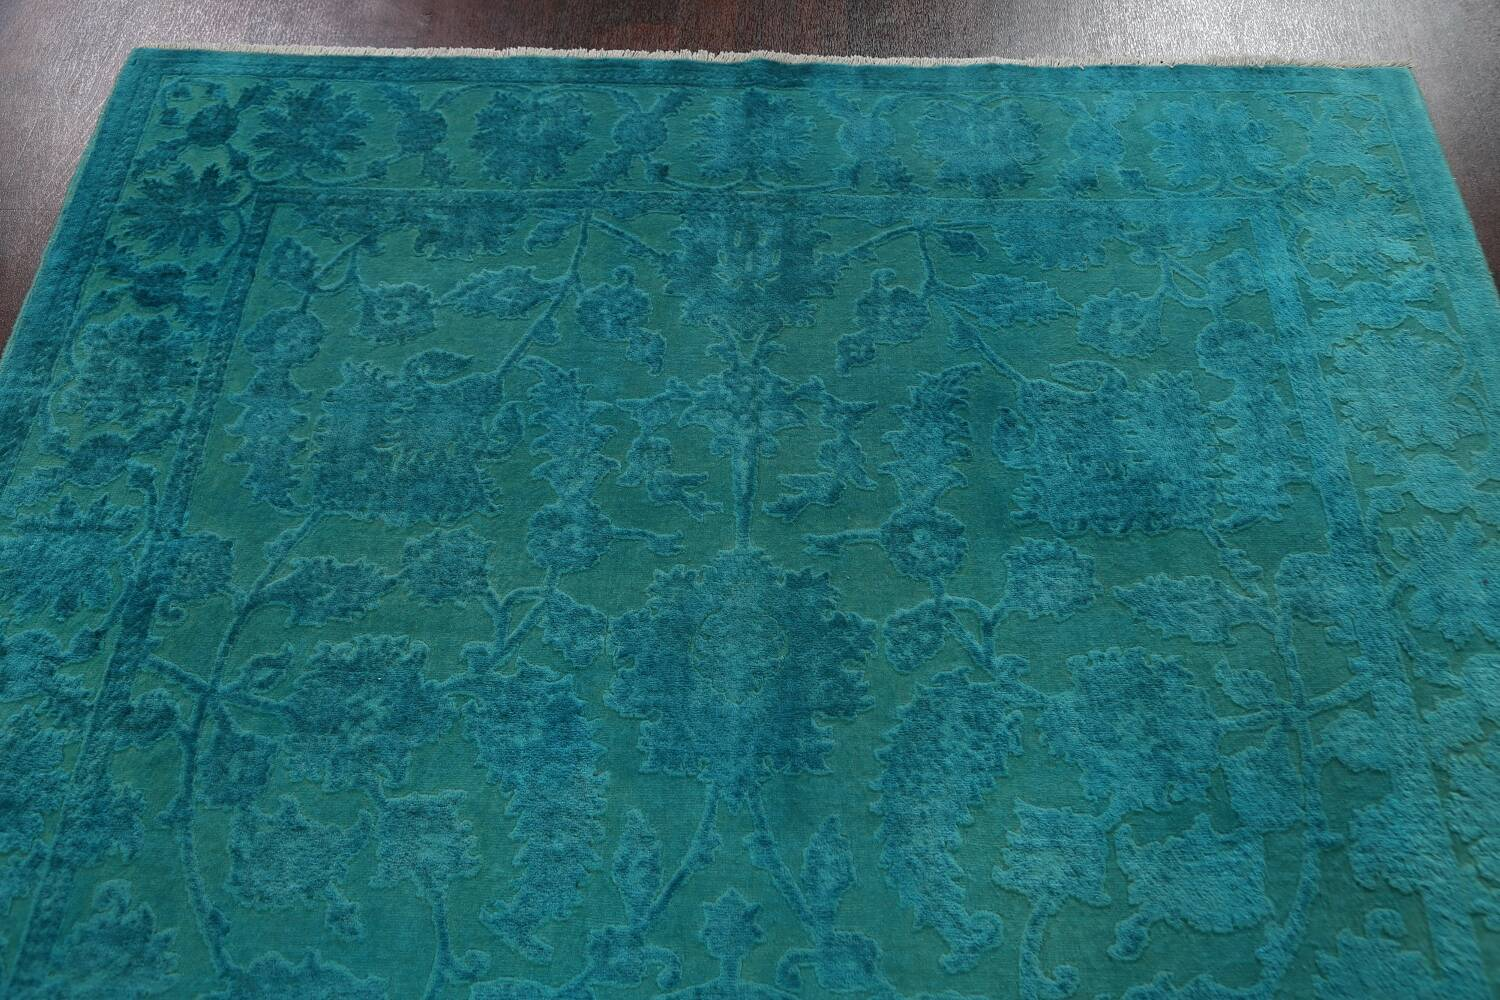 Vegetable Dye Carved Aqua Oushak Chobi Oriental Area Rug 6x9 image 9